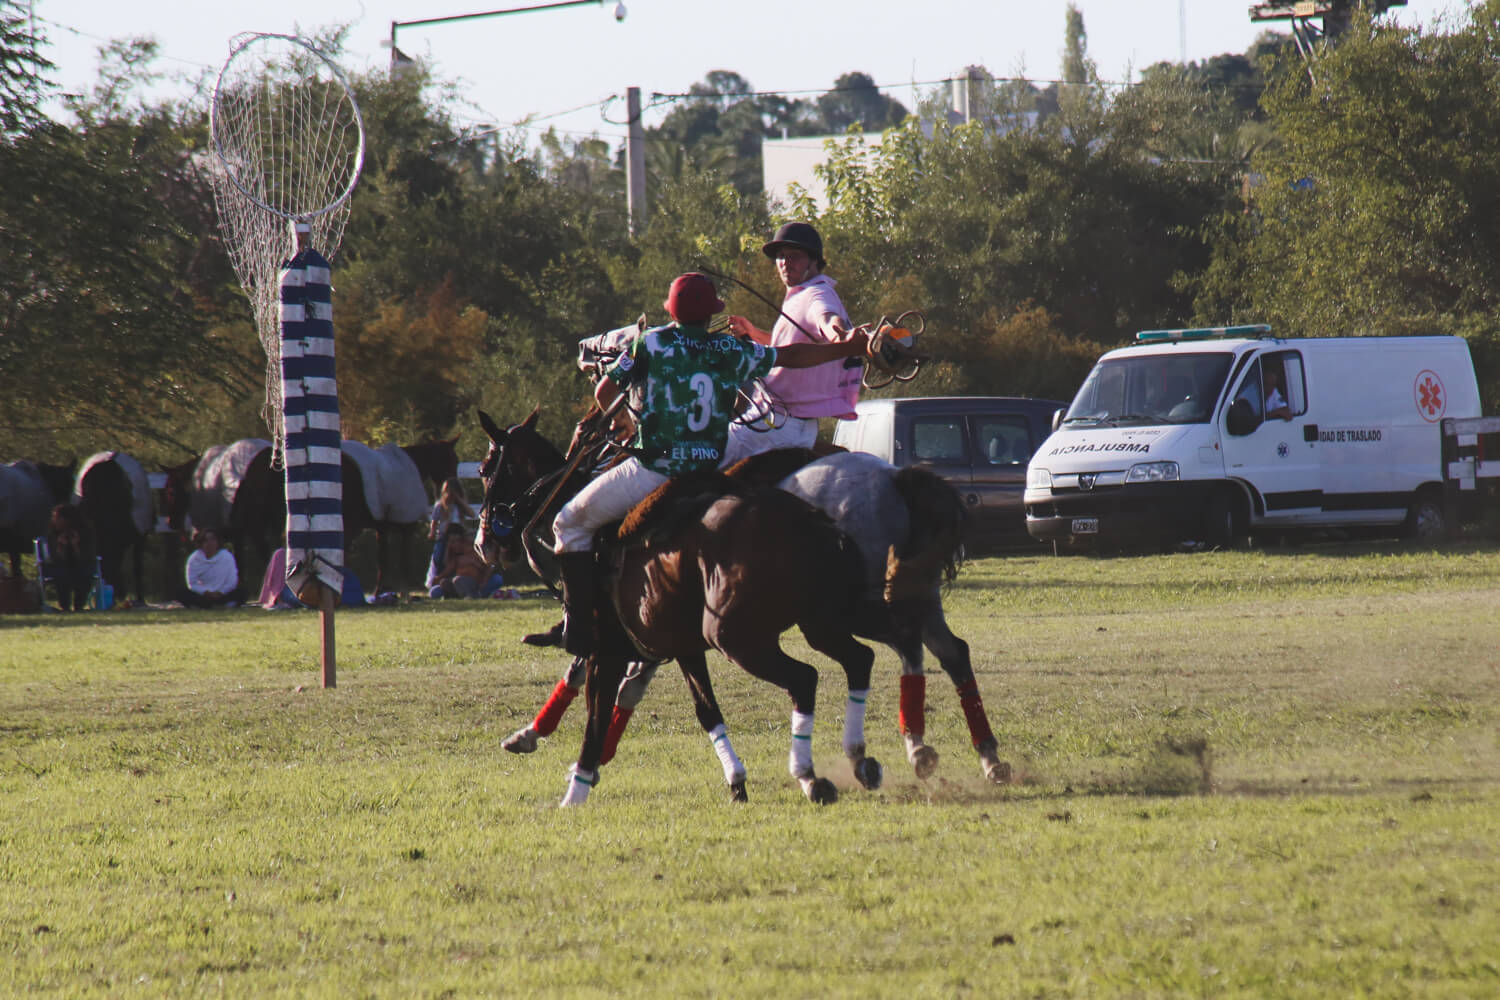 A  cinchada  in action, two players fight for the ball.